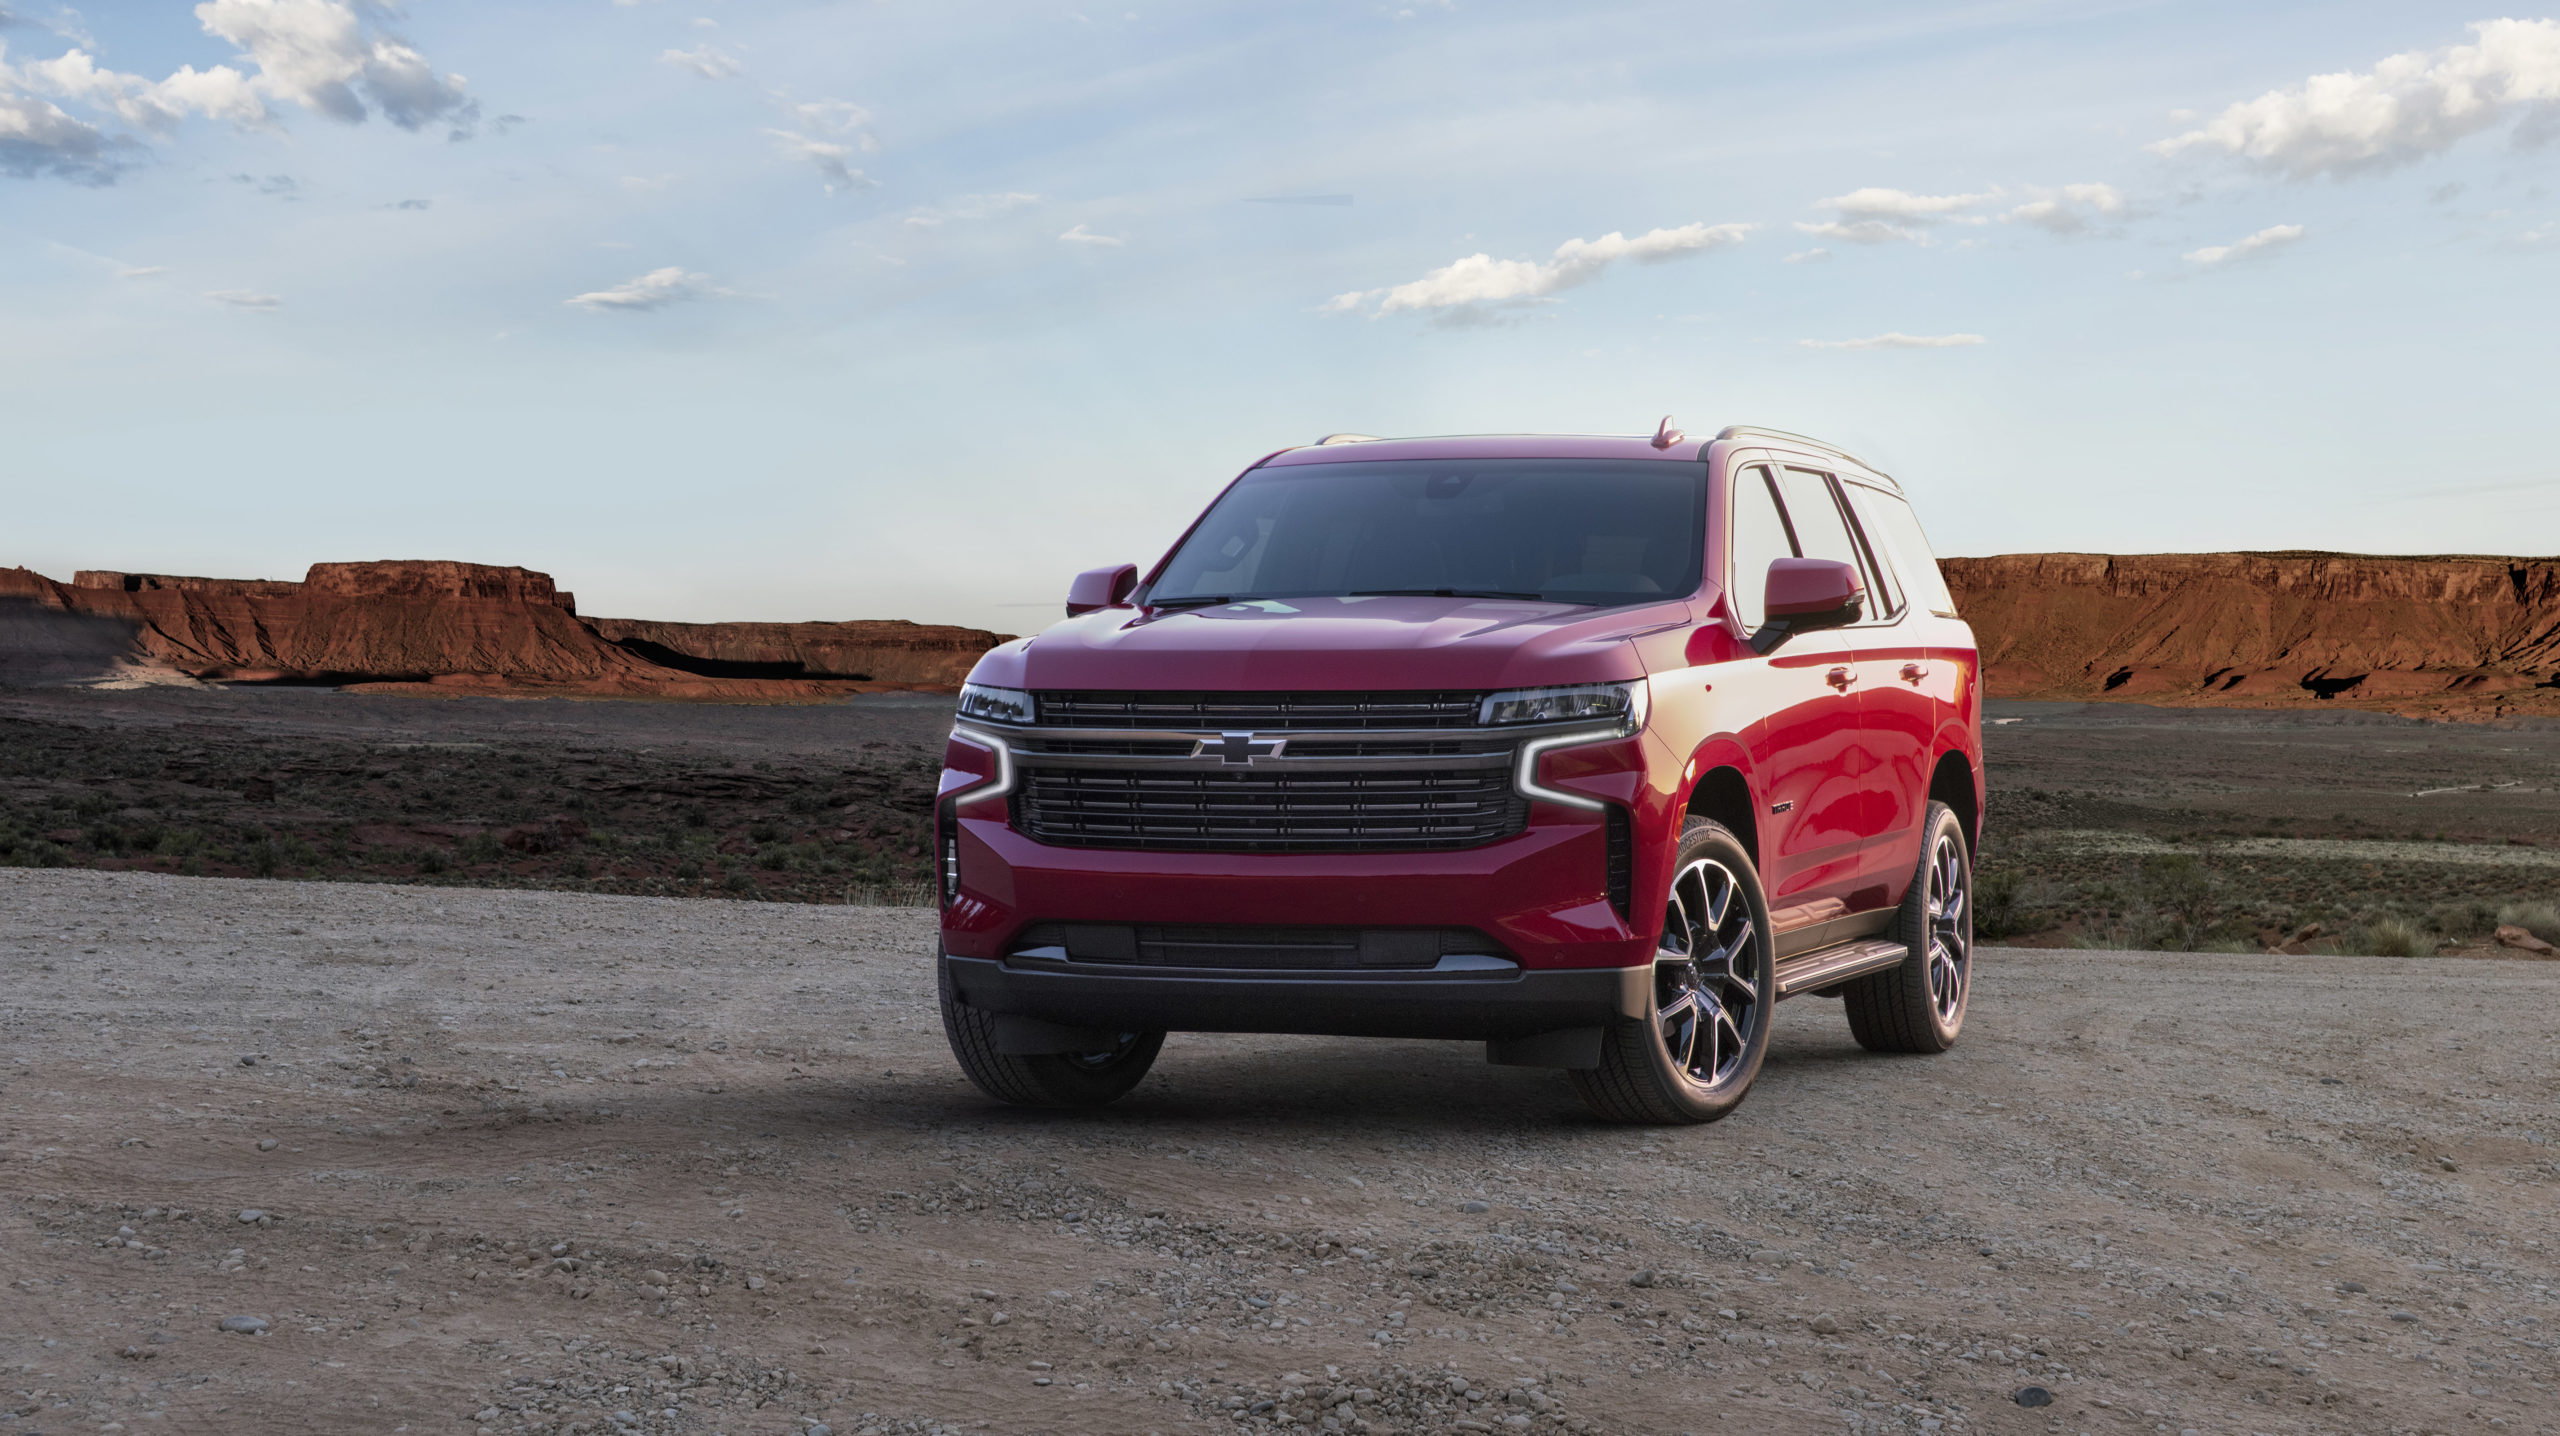 chevrolet  paint quality  corrosion resistance should improve on 2021 tahoe  suburban